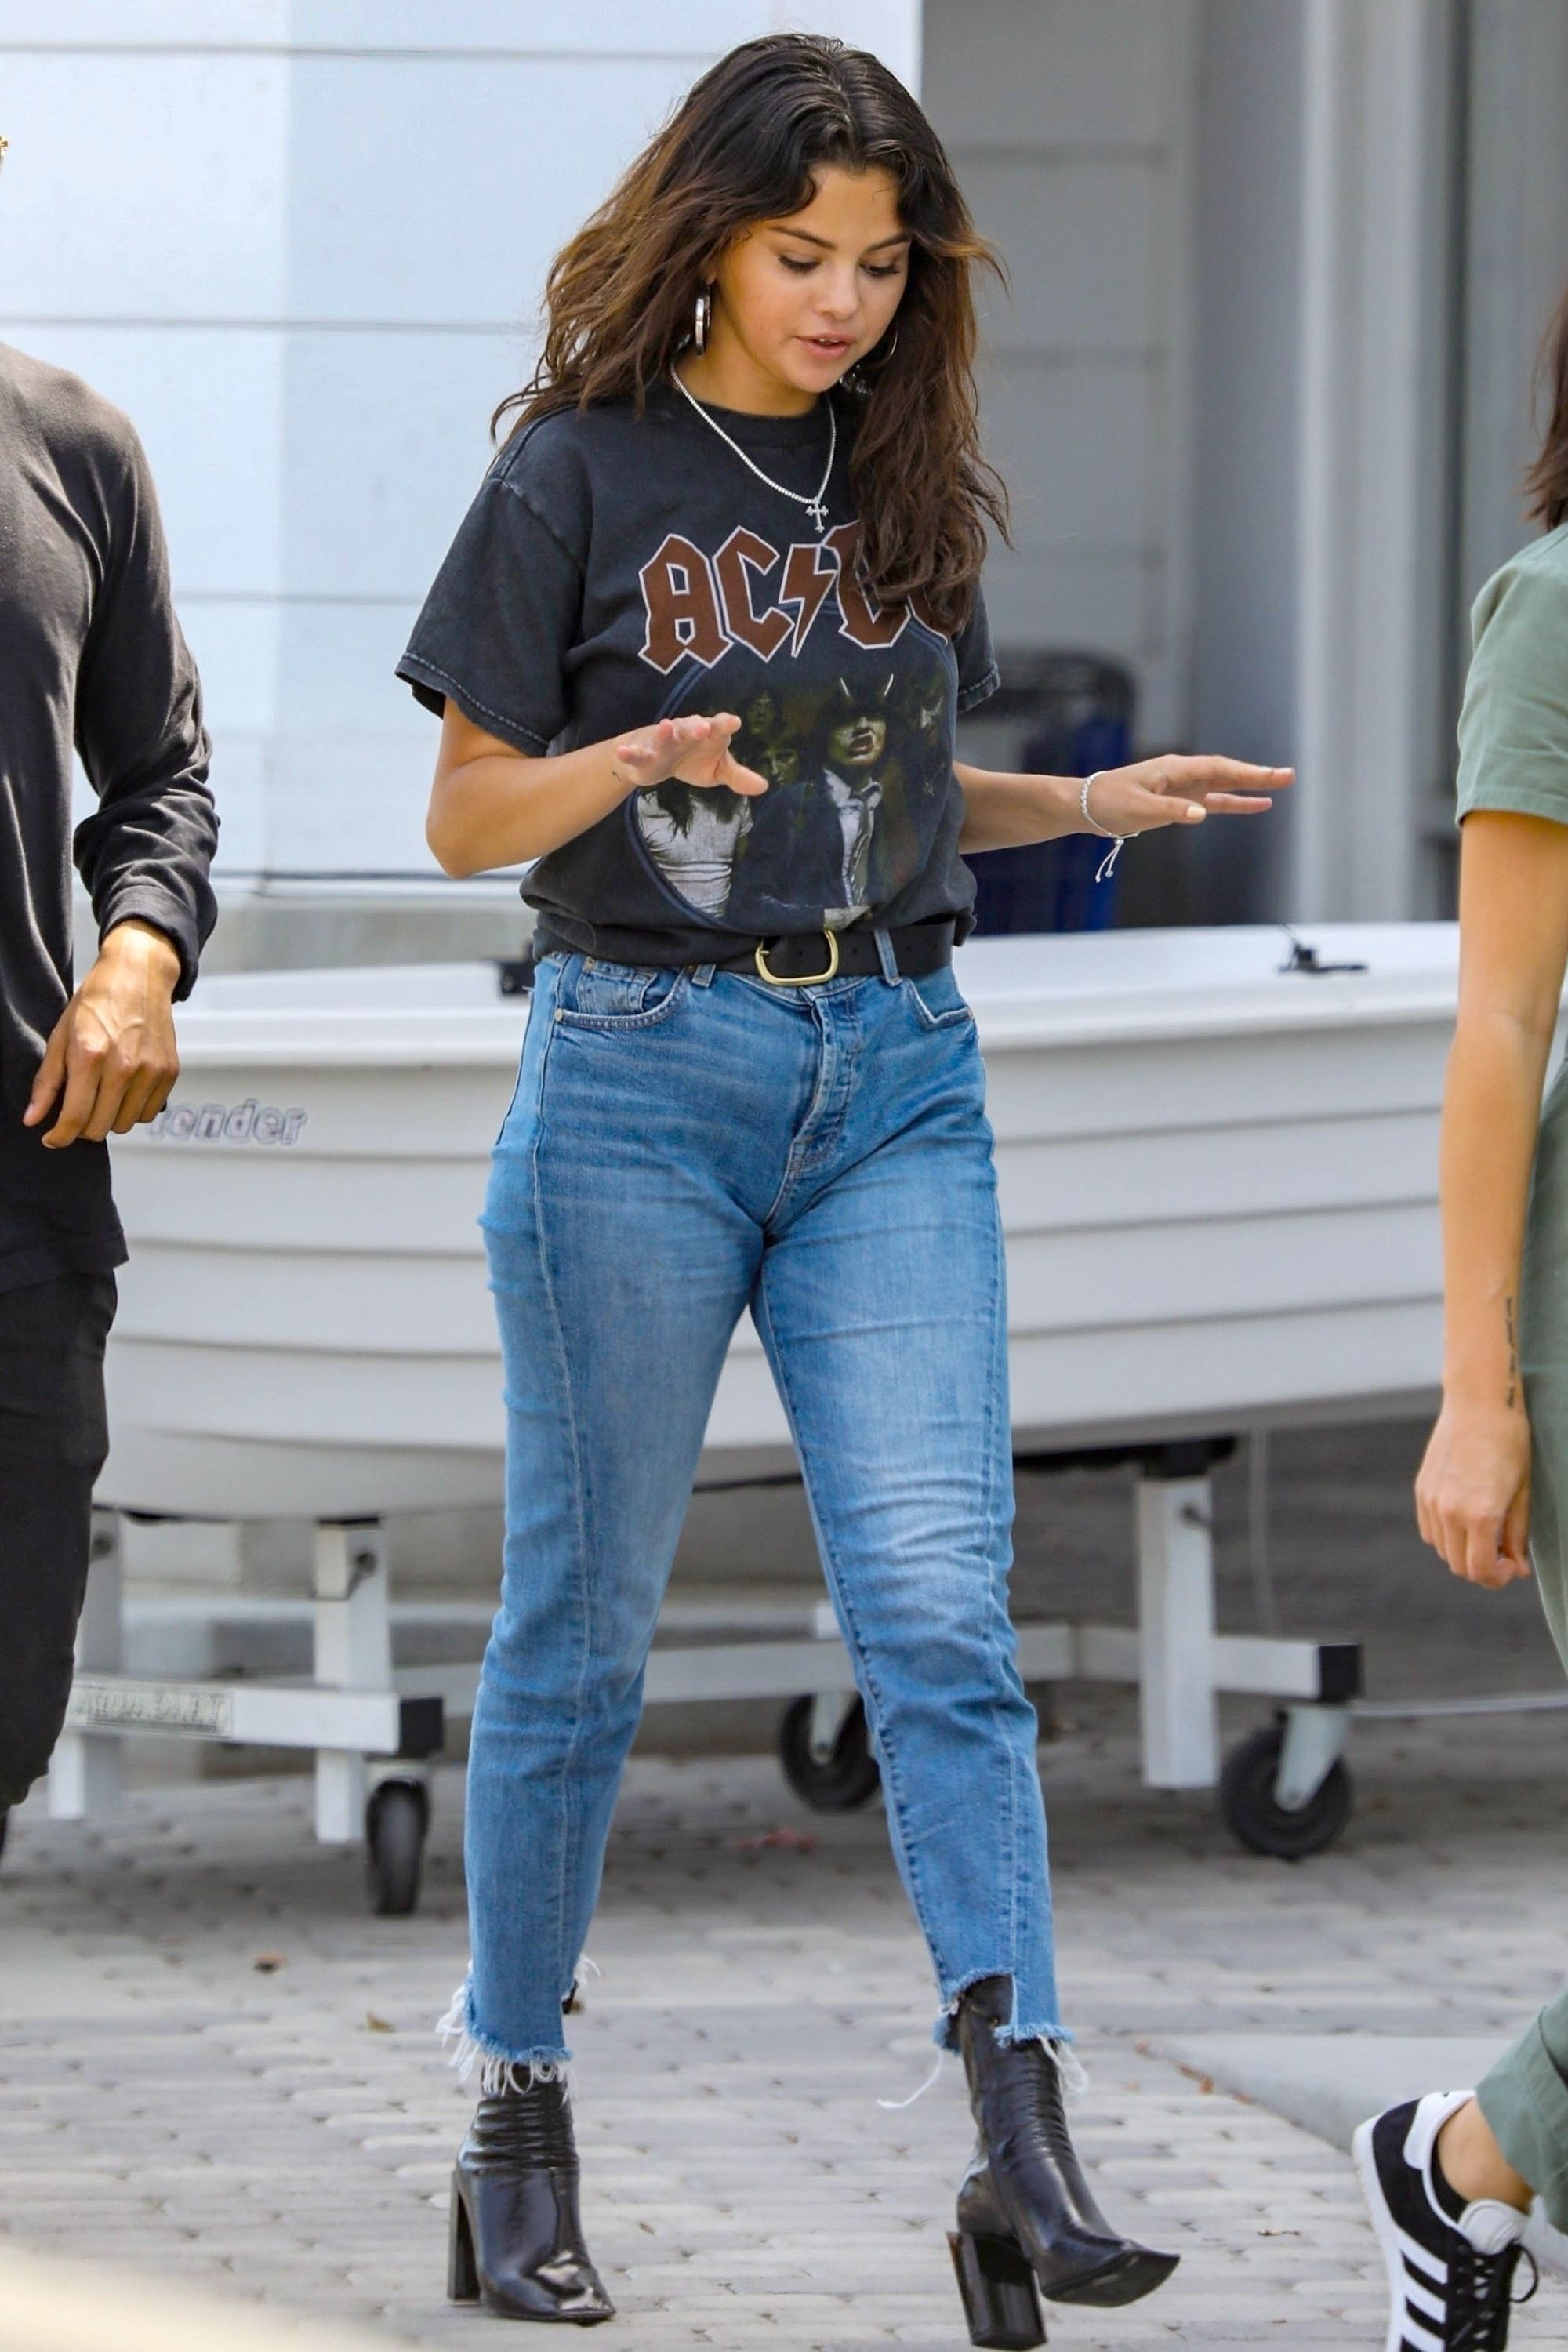 *EXCLUSIVE* Selena Gomez hits the mall with friends